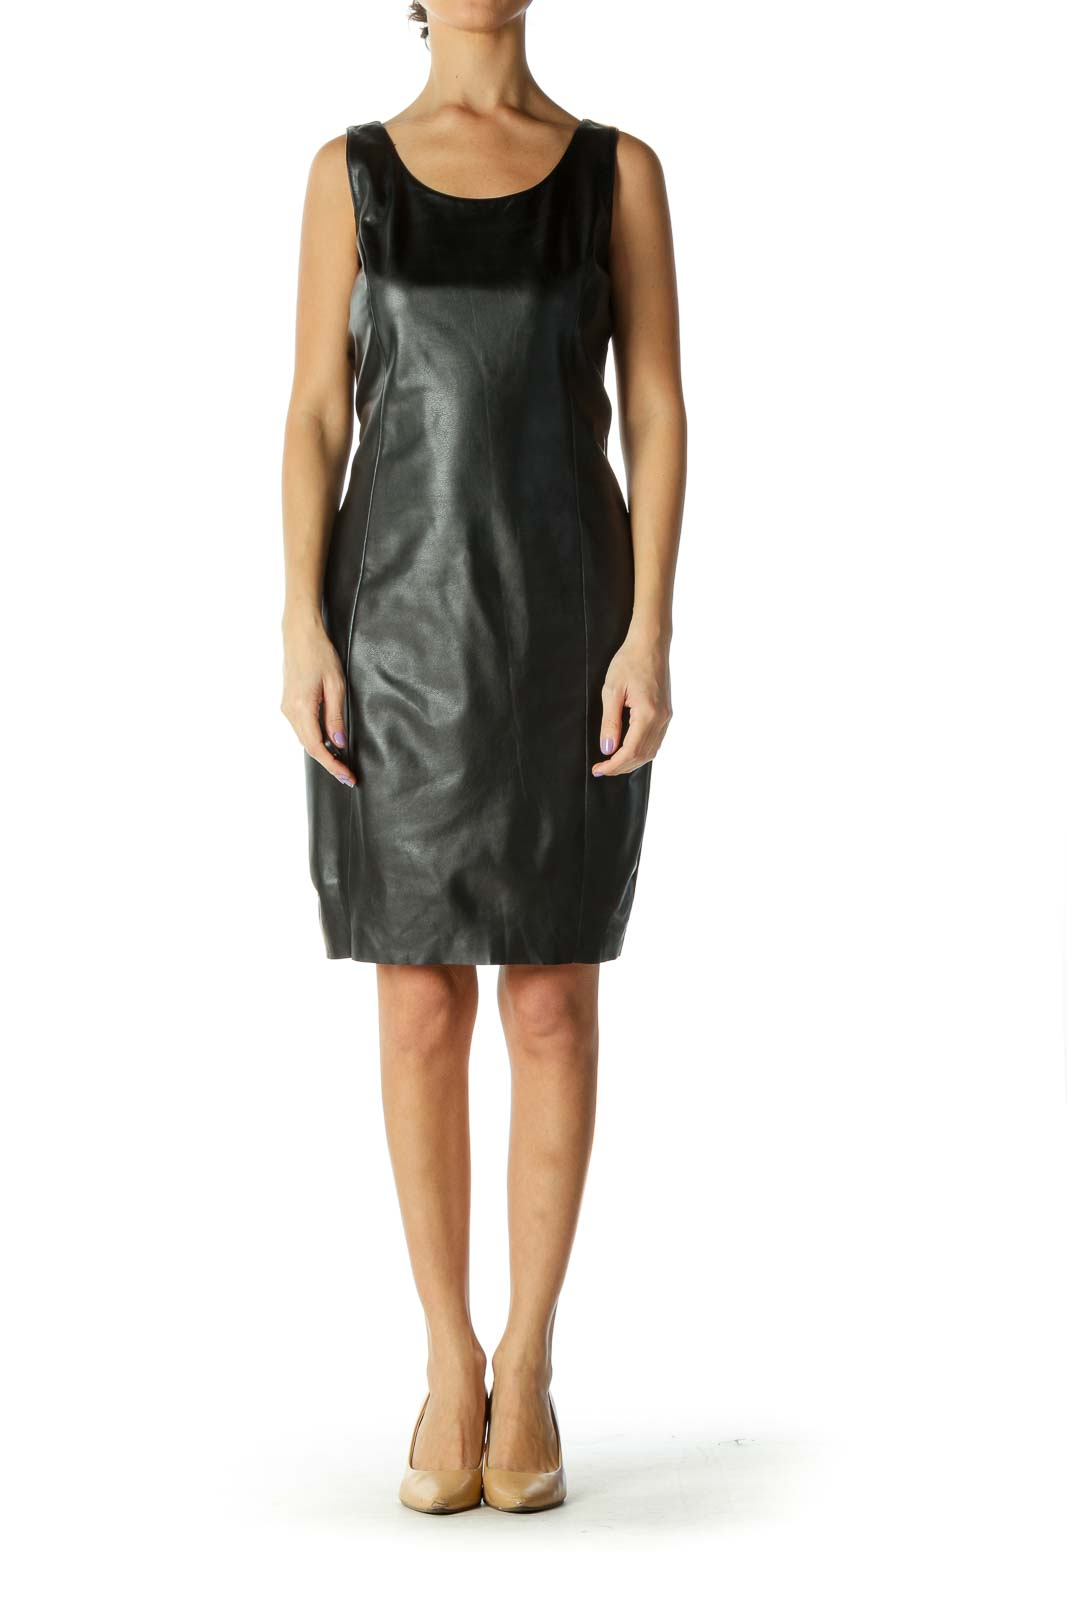 Black Fitter Pleather Dress